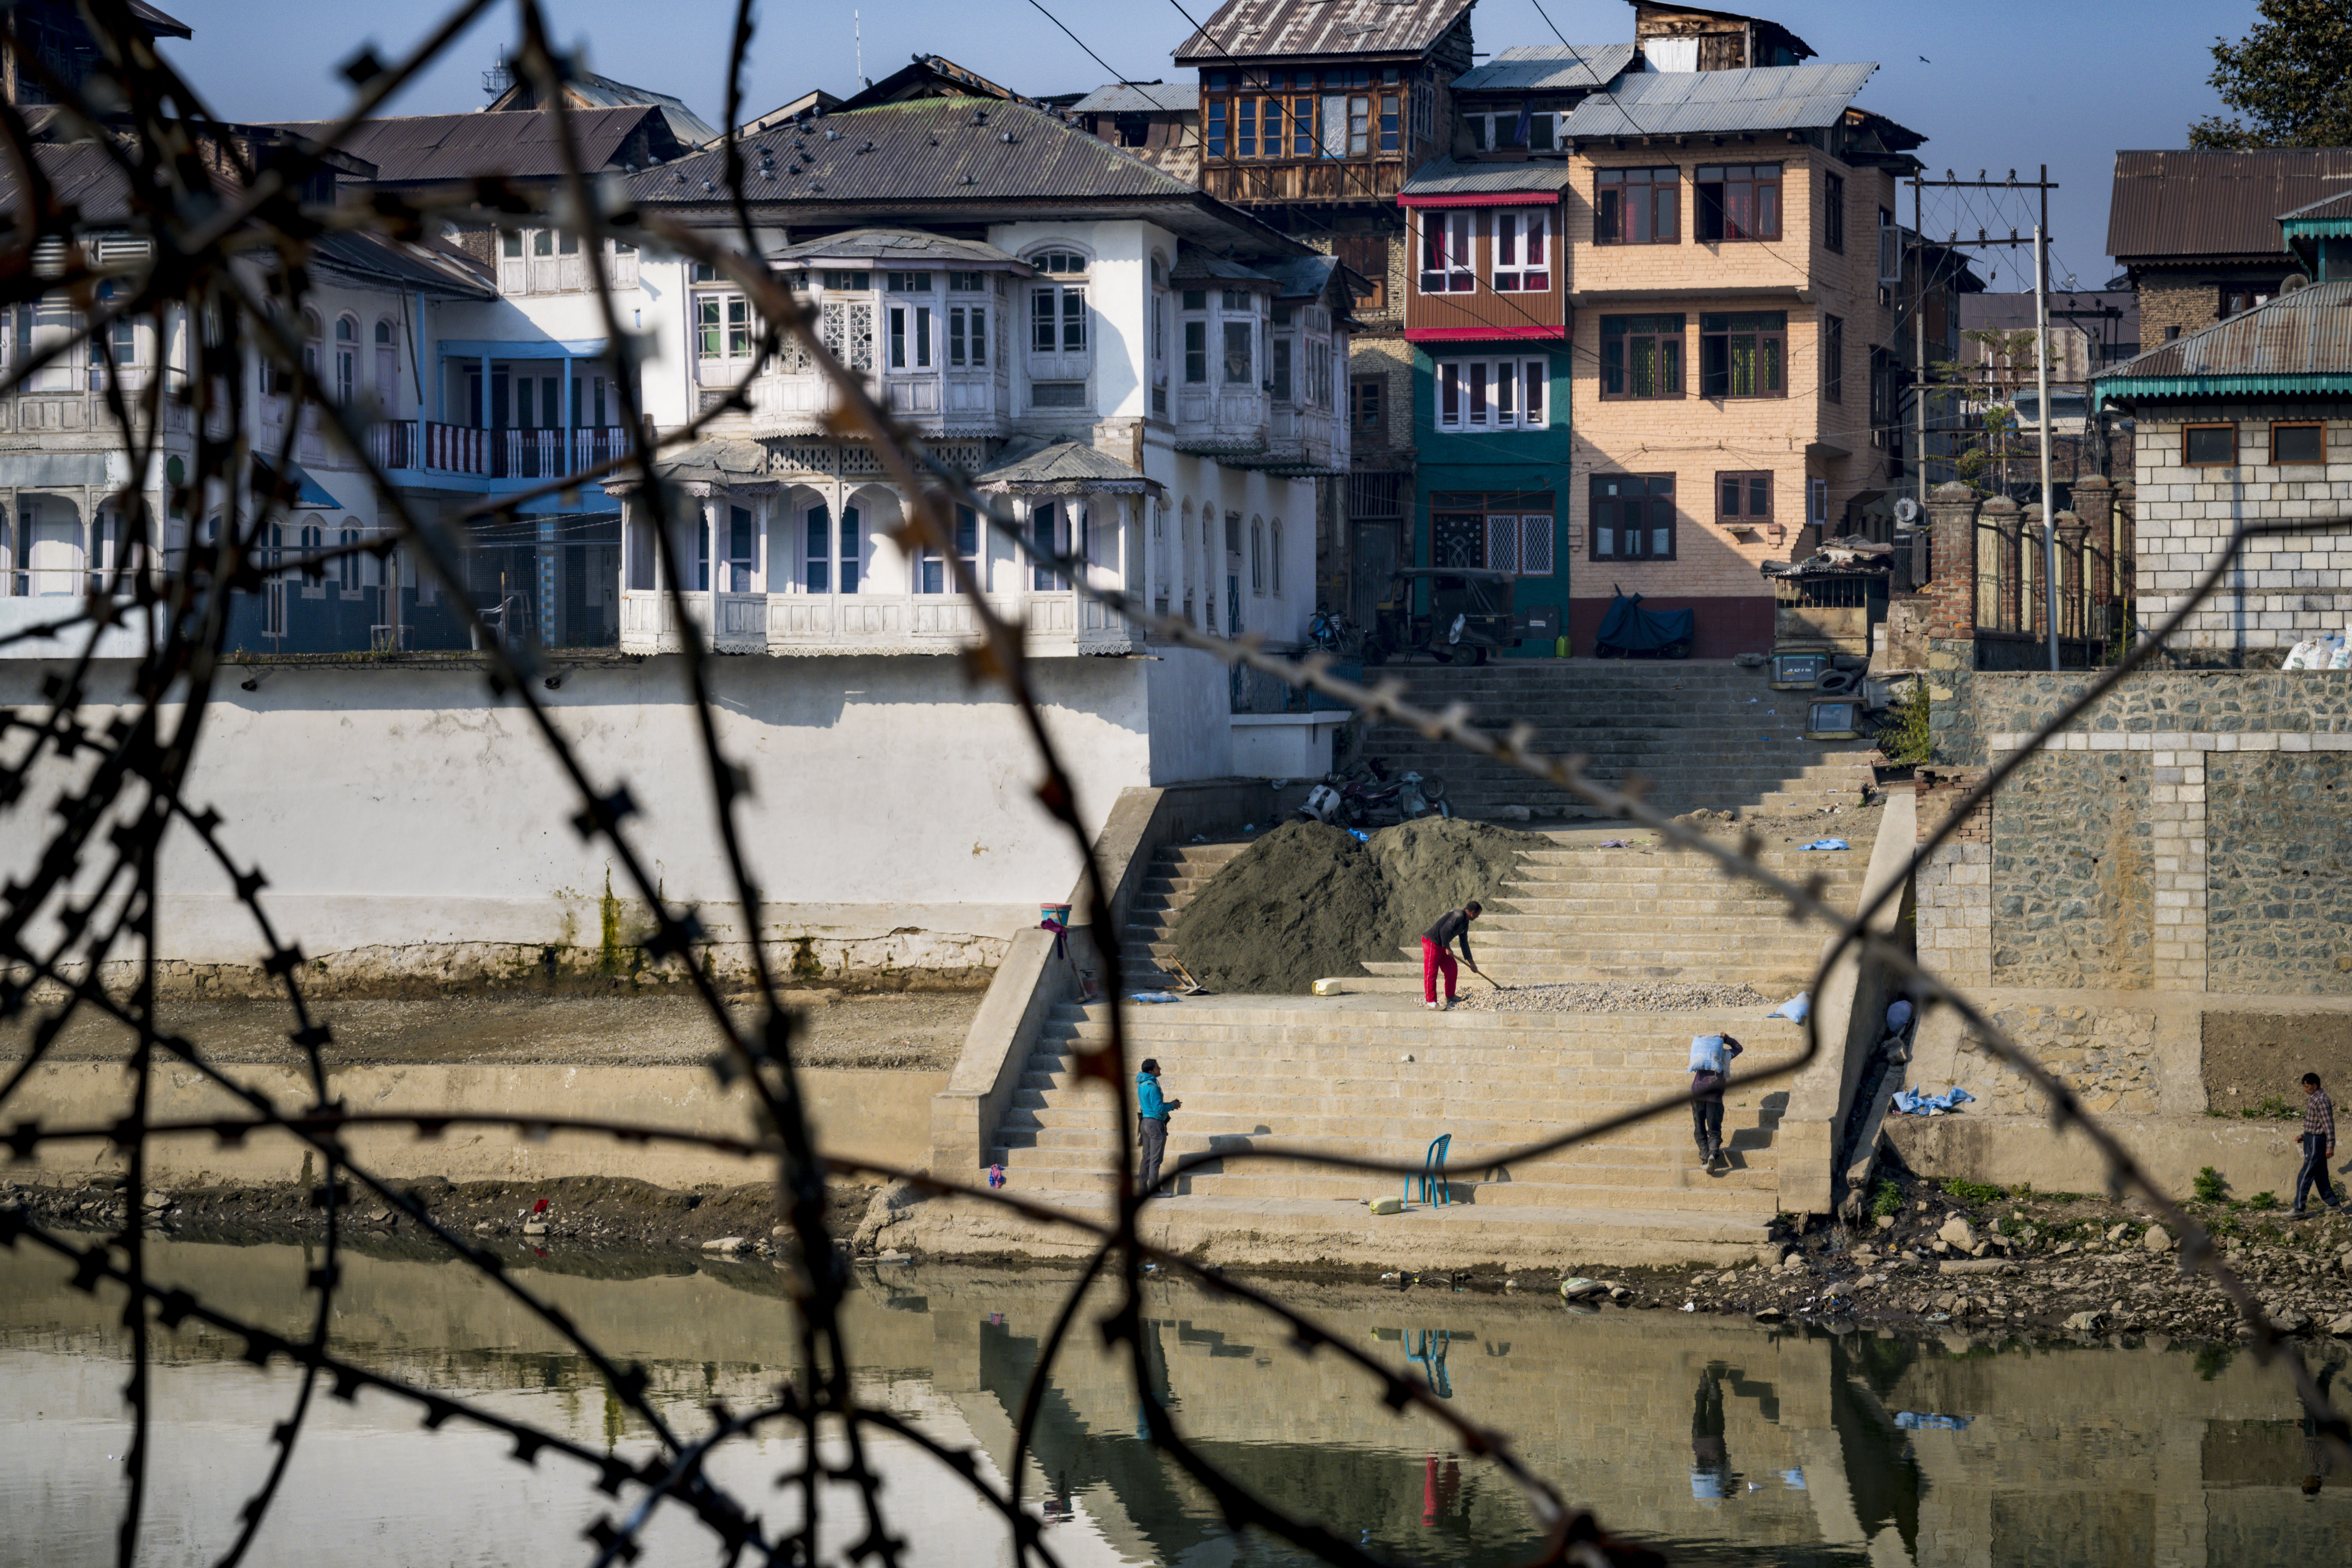 Srinagar, barbwire in neighborhoods